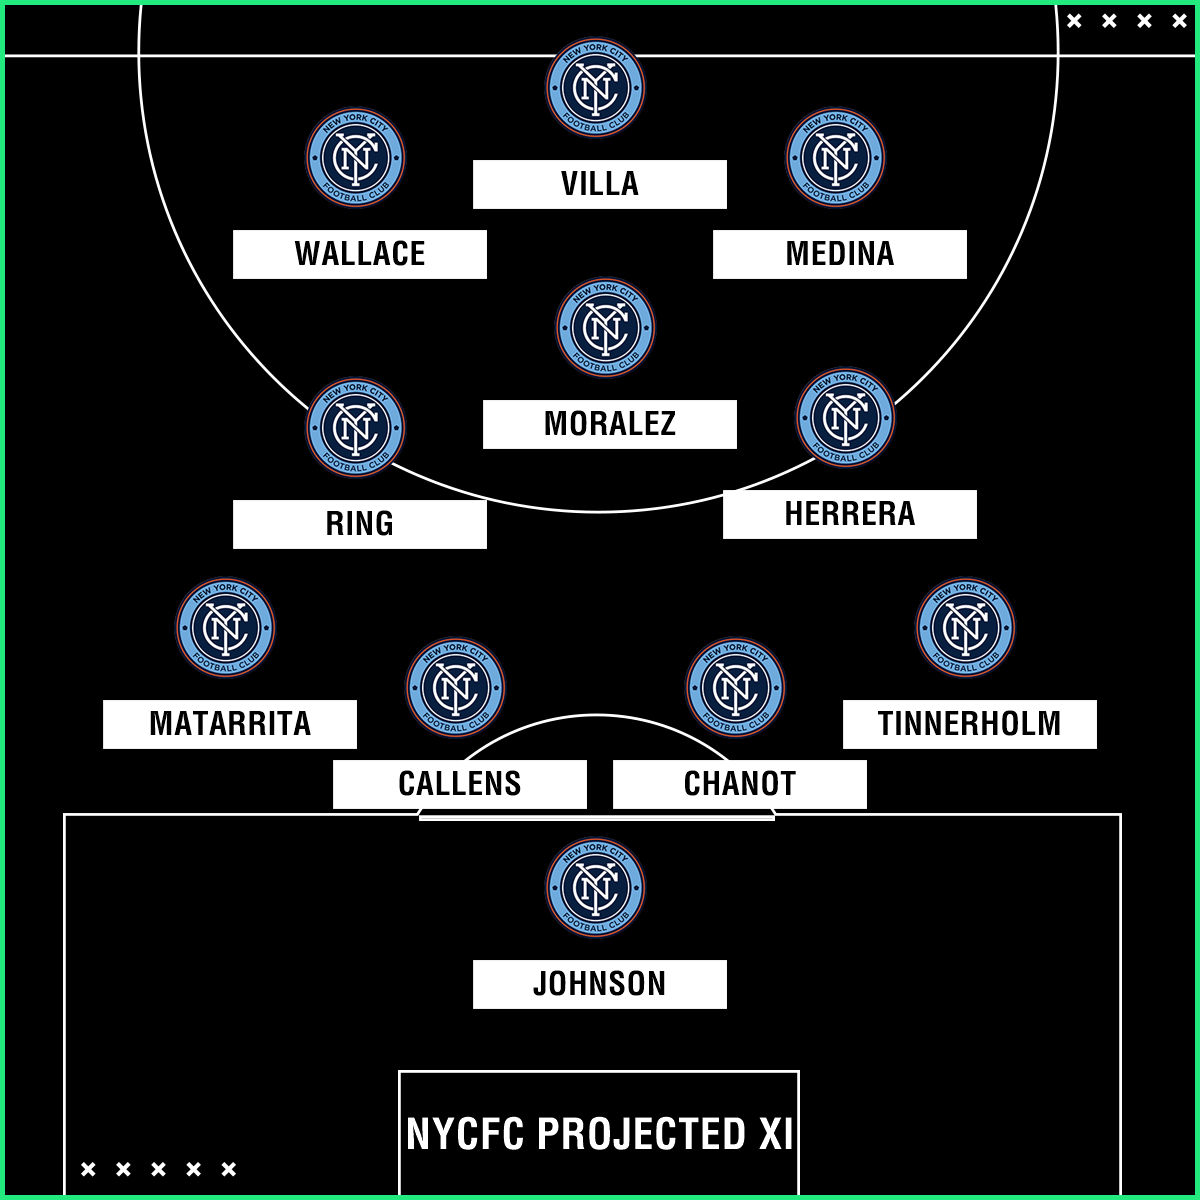 New York City FC projected XI